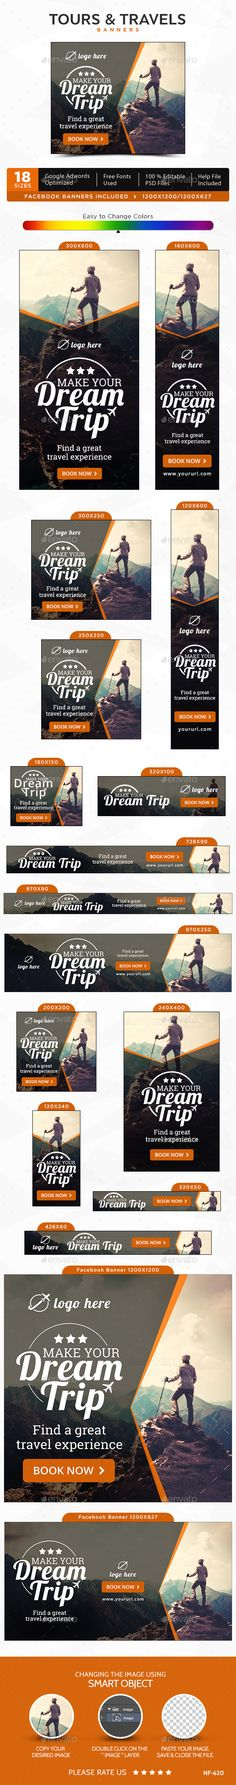 Tours & Travels Banners Template #bannerdesign #webbanners Download: http://graphicriver.net/item/tours-travels-banners/12800665?ref=ksioks